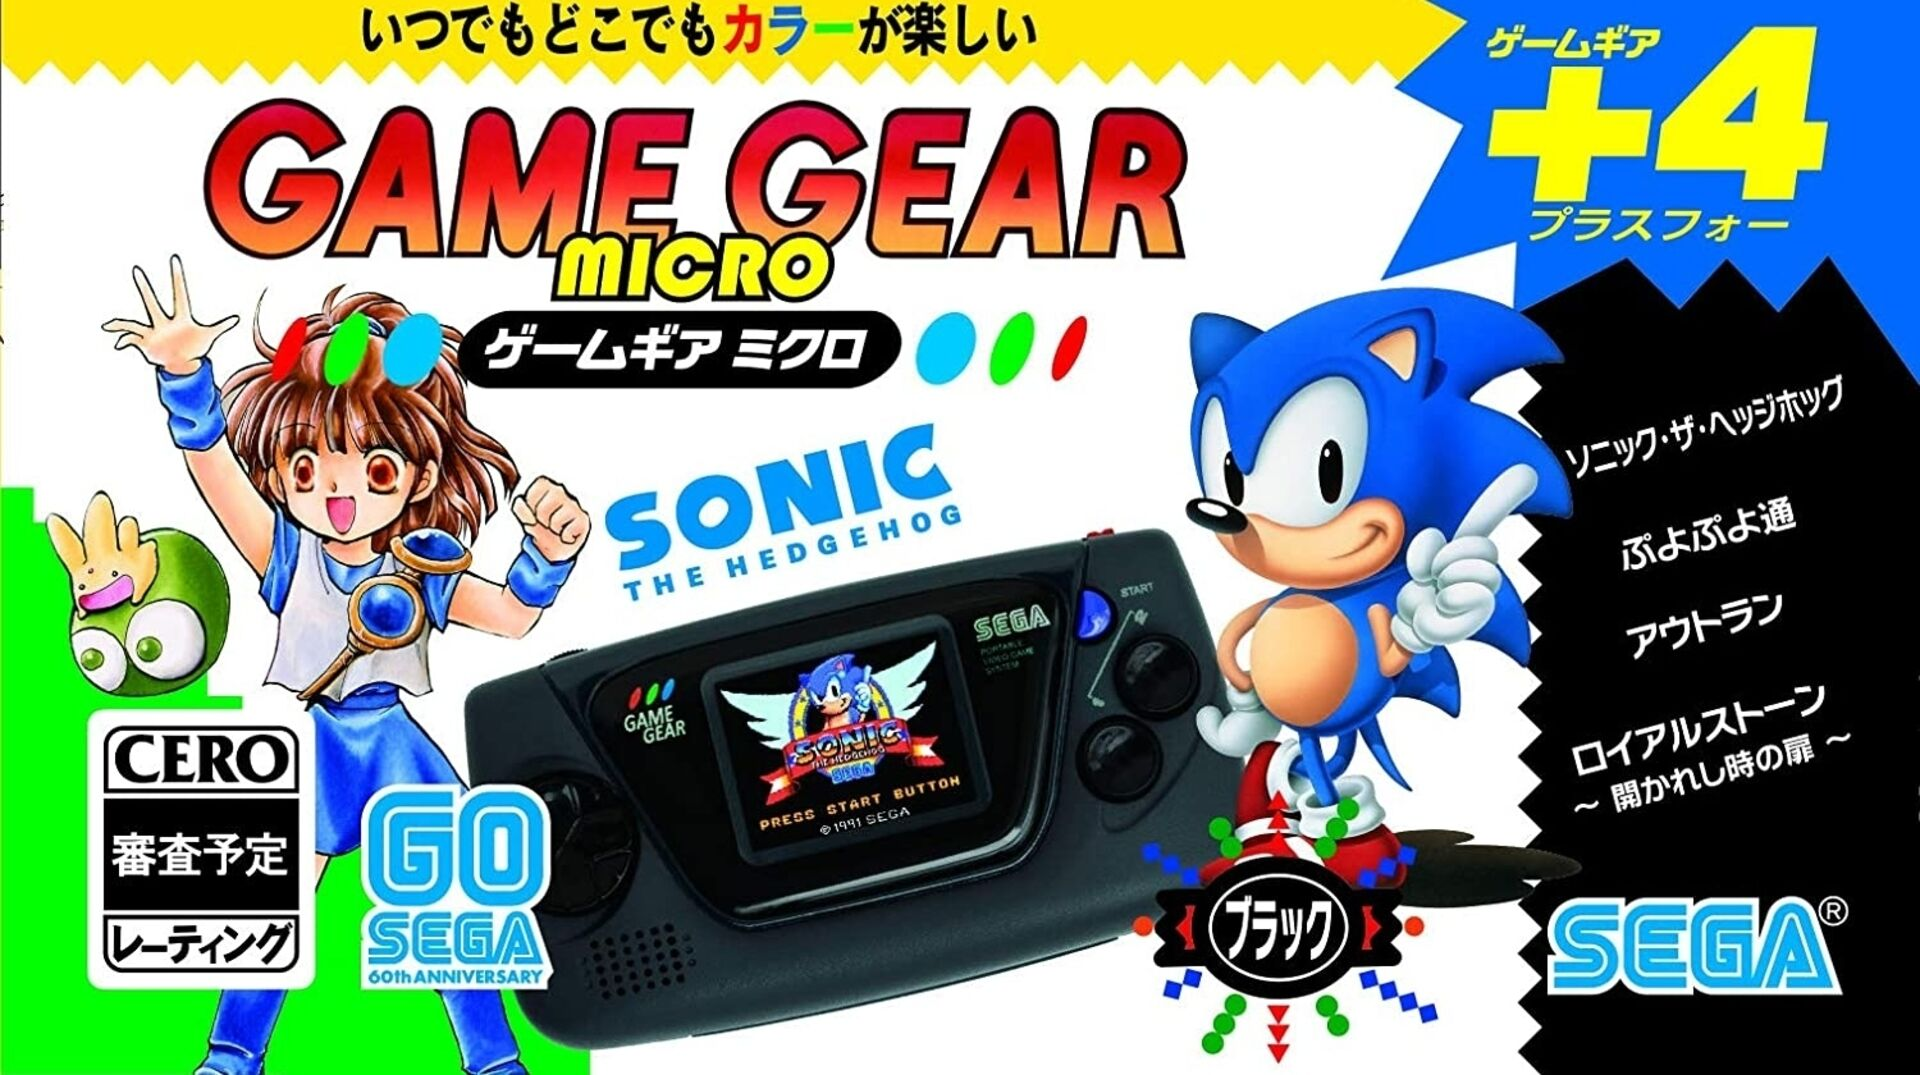 Sega Celebrates Its 60th Anniversary With A Game Gear Micro